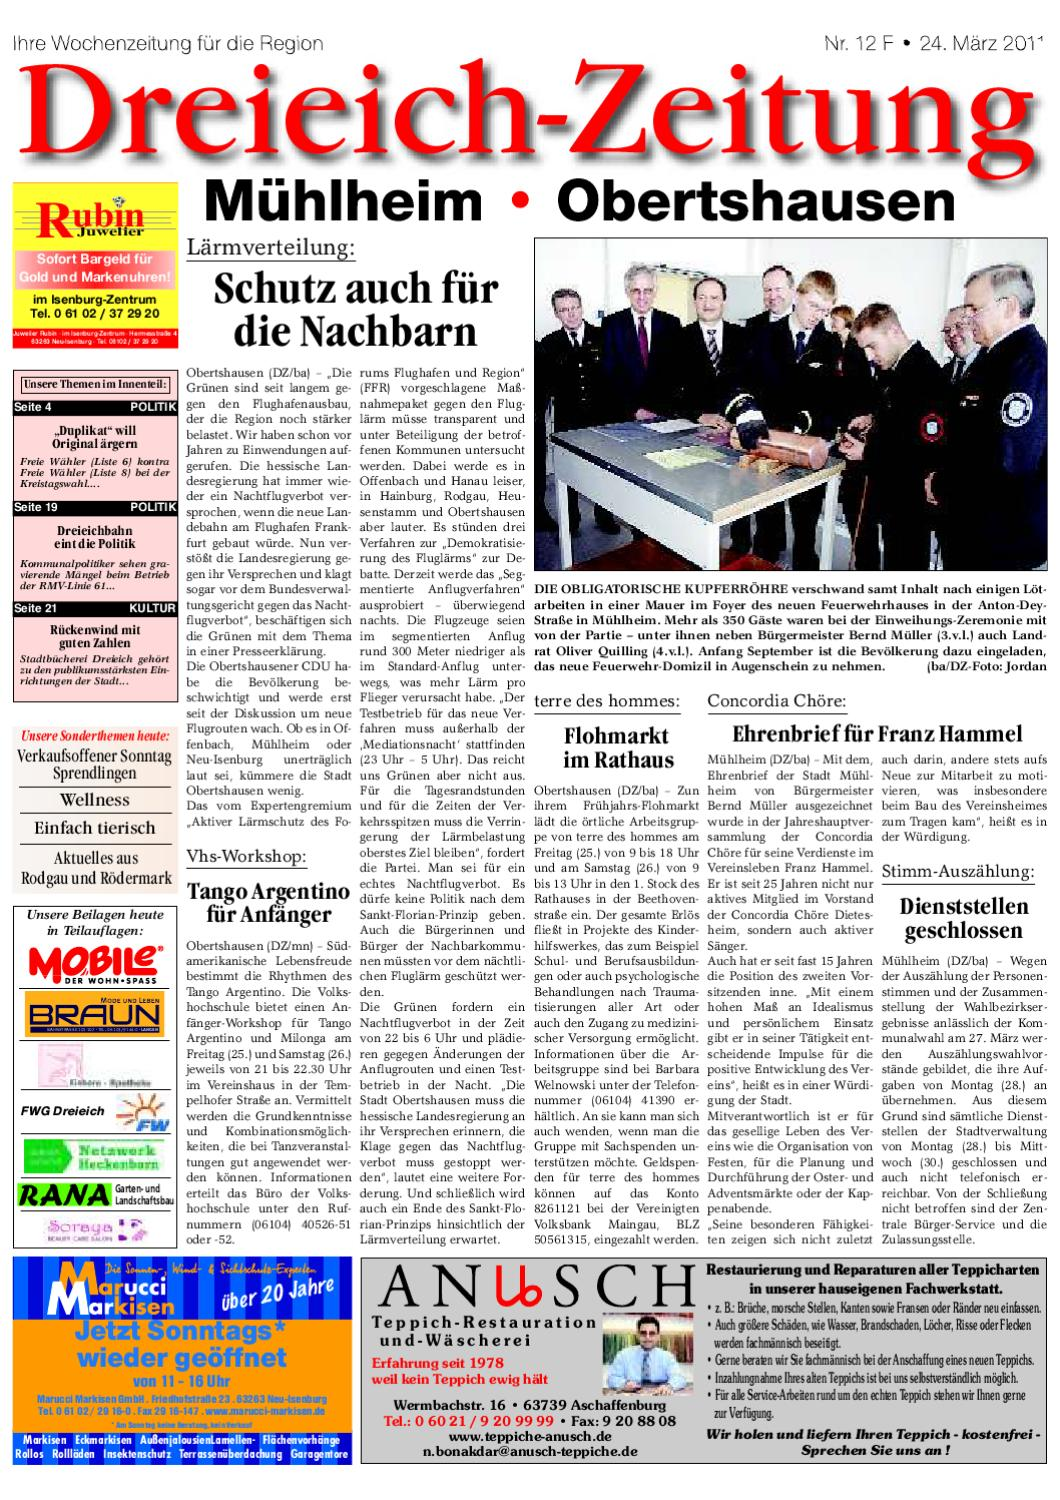 DZF 24-03-2011 by Dreieich-Zeitung/Offenbach-Journal - issuu